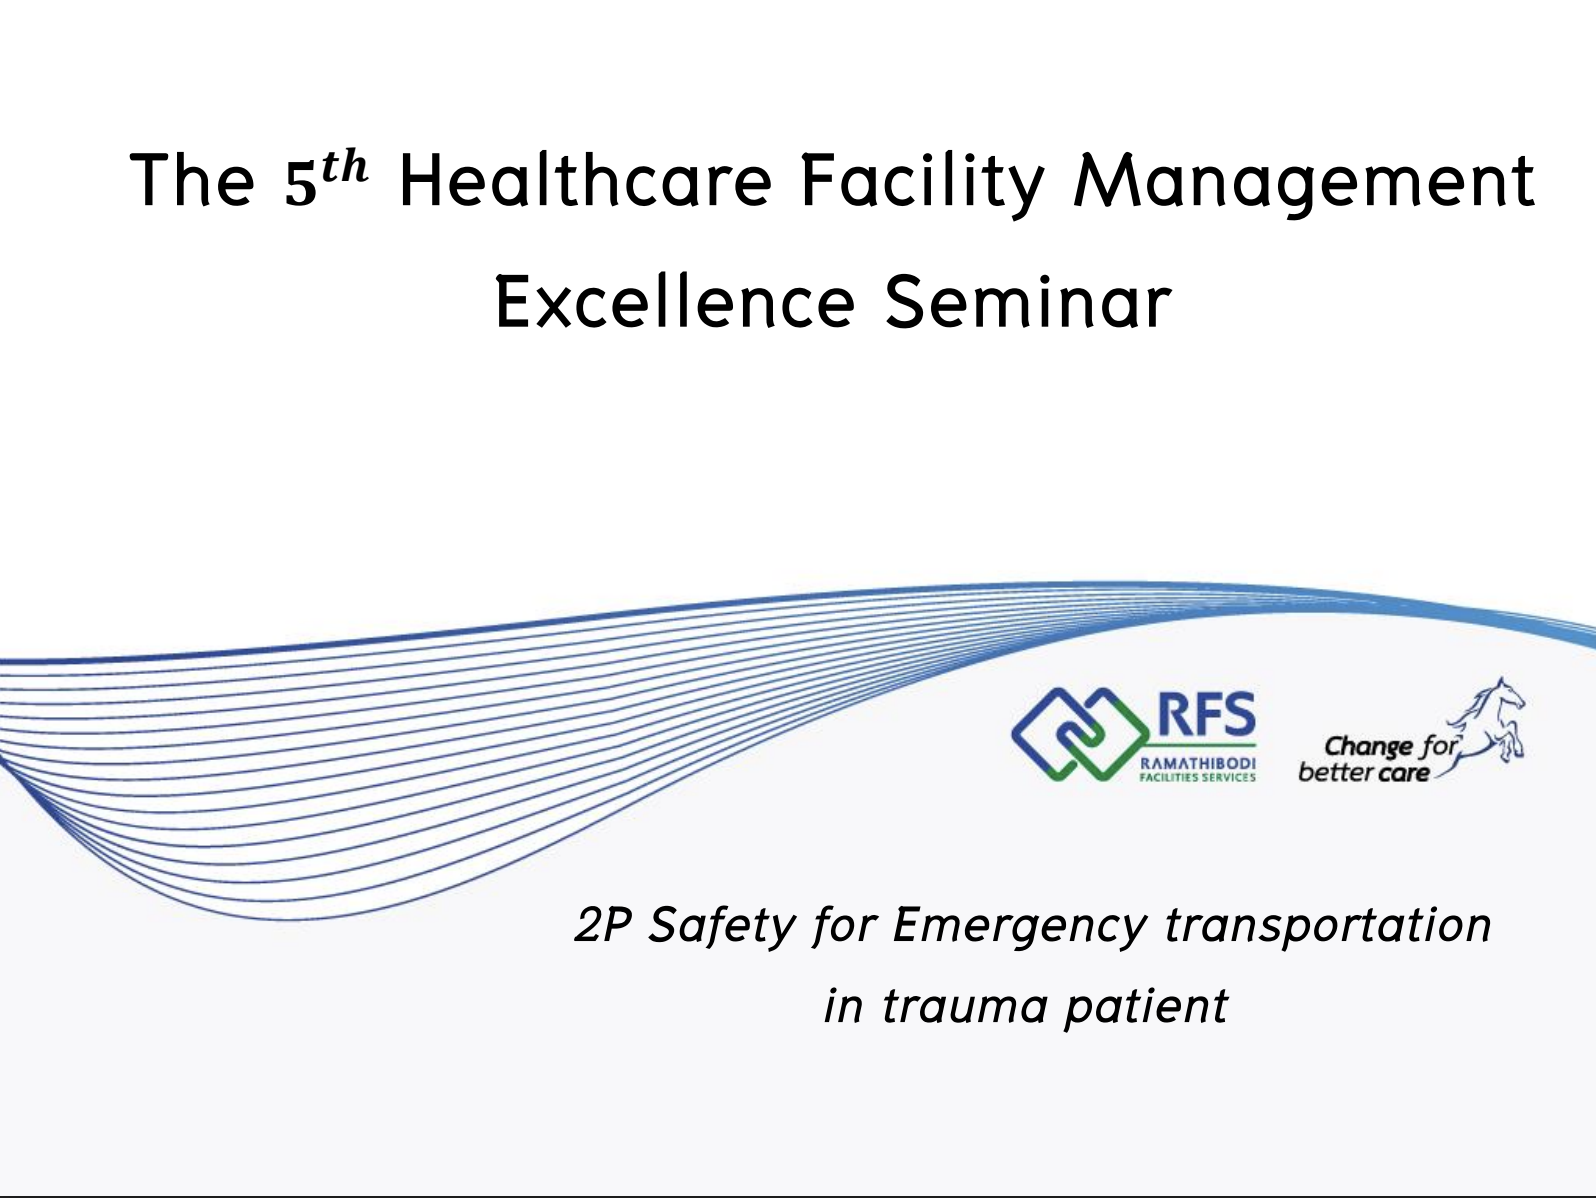 The 5th Healthcare Facility Management Excellence Seminar